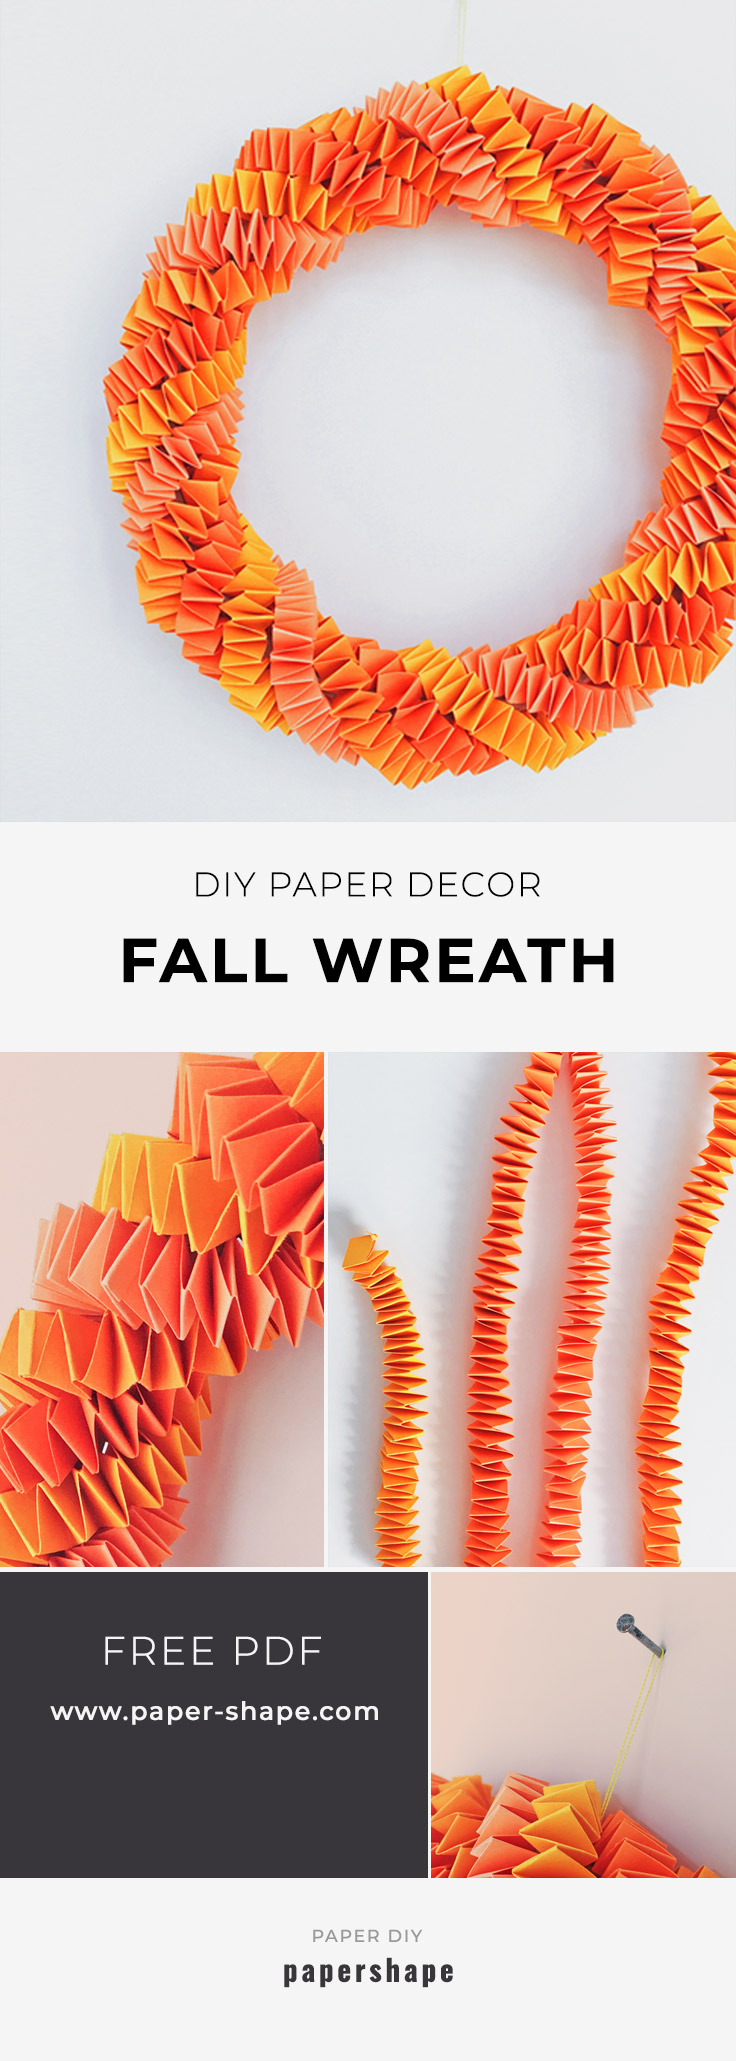 fall craft: diy fall wreath with paper strings. easy to make even with children #papershape